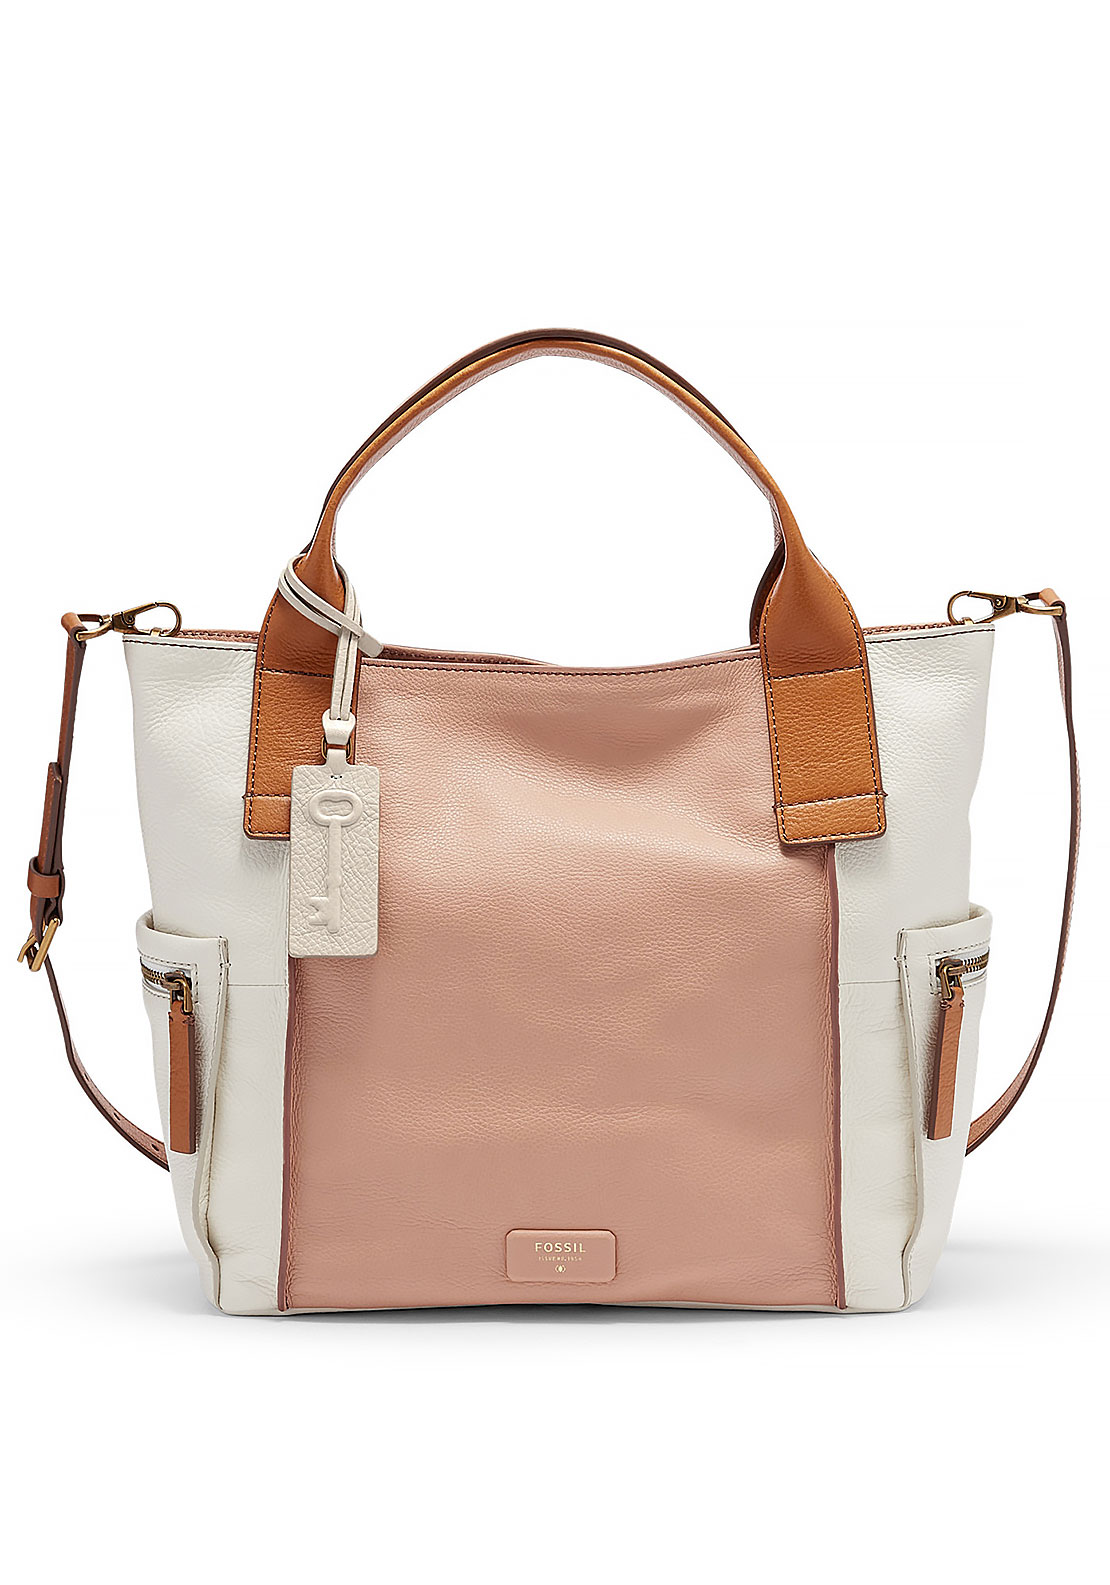 Fossil Emerson Colour Block Leather Satchel Bag, Shell and White